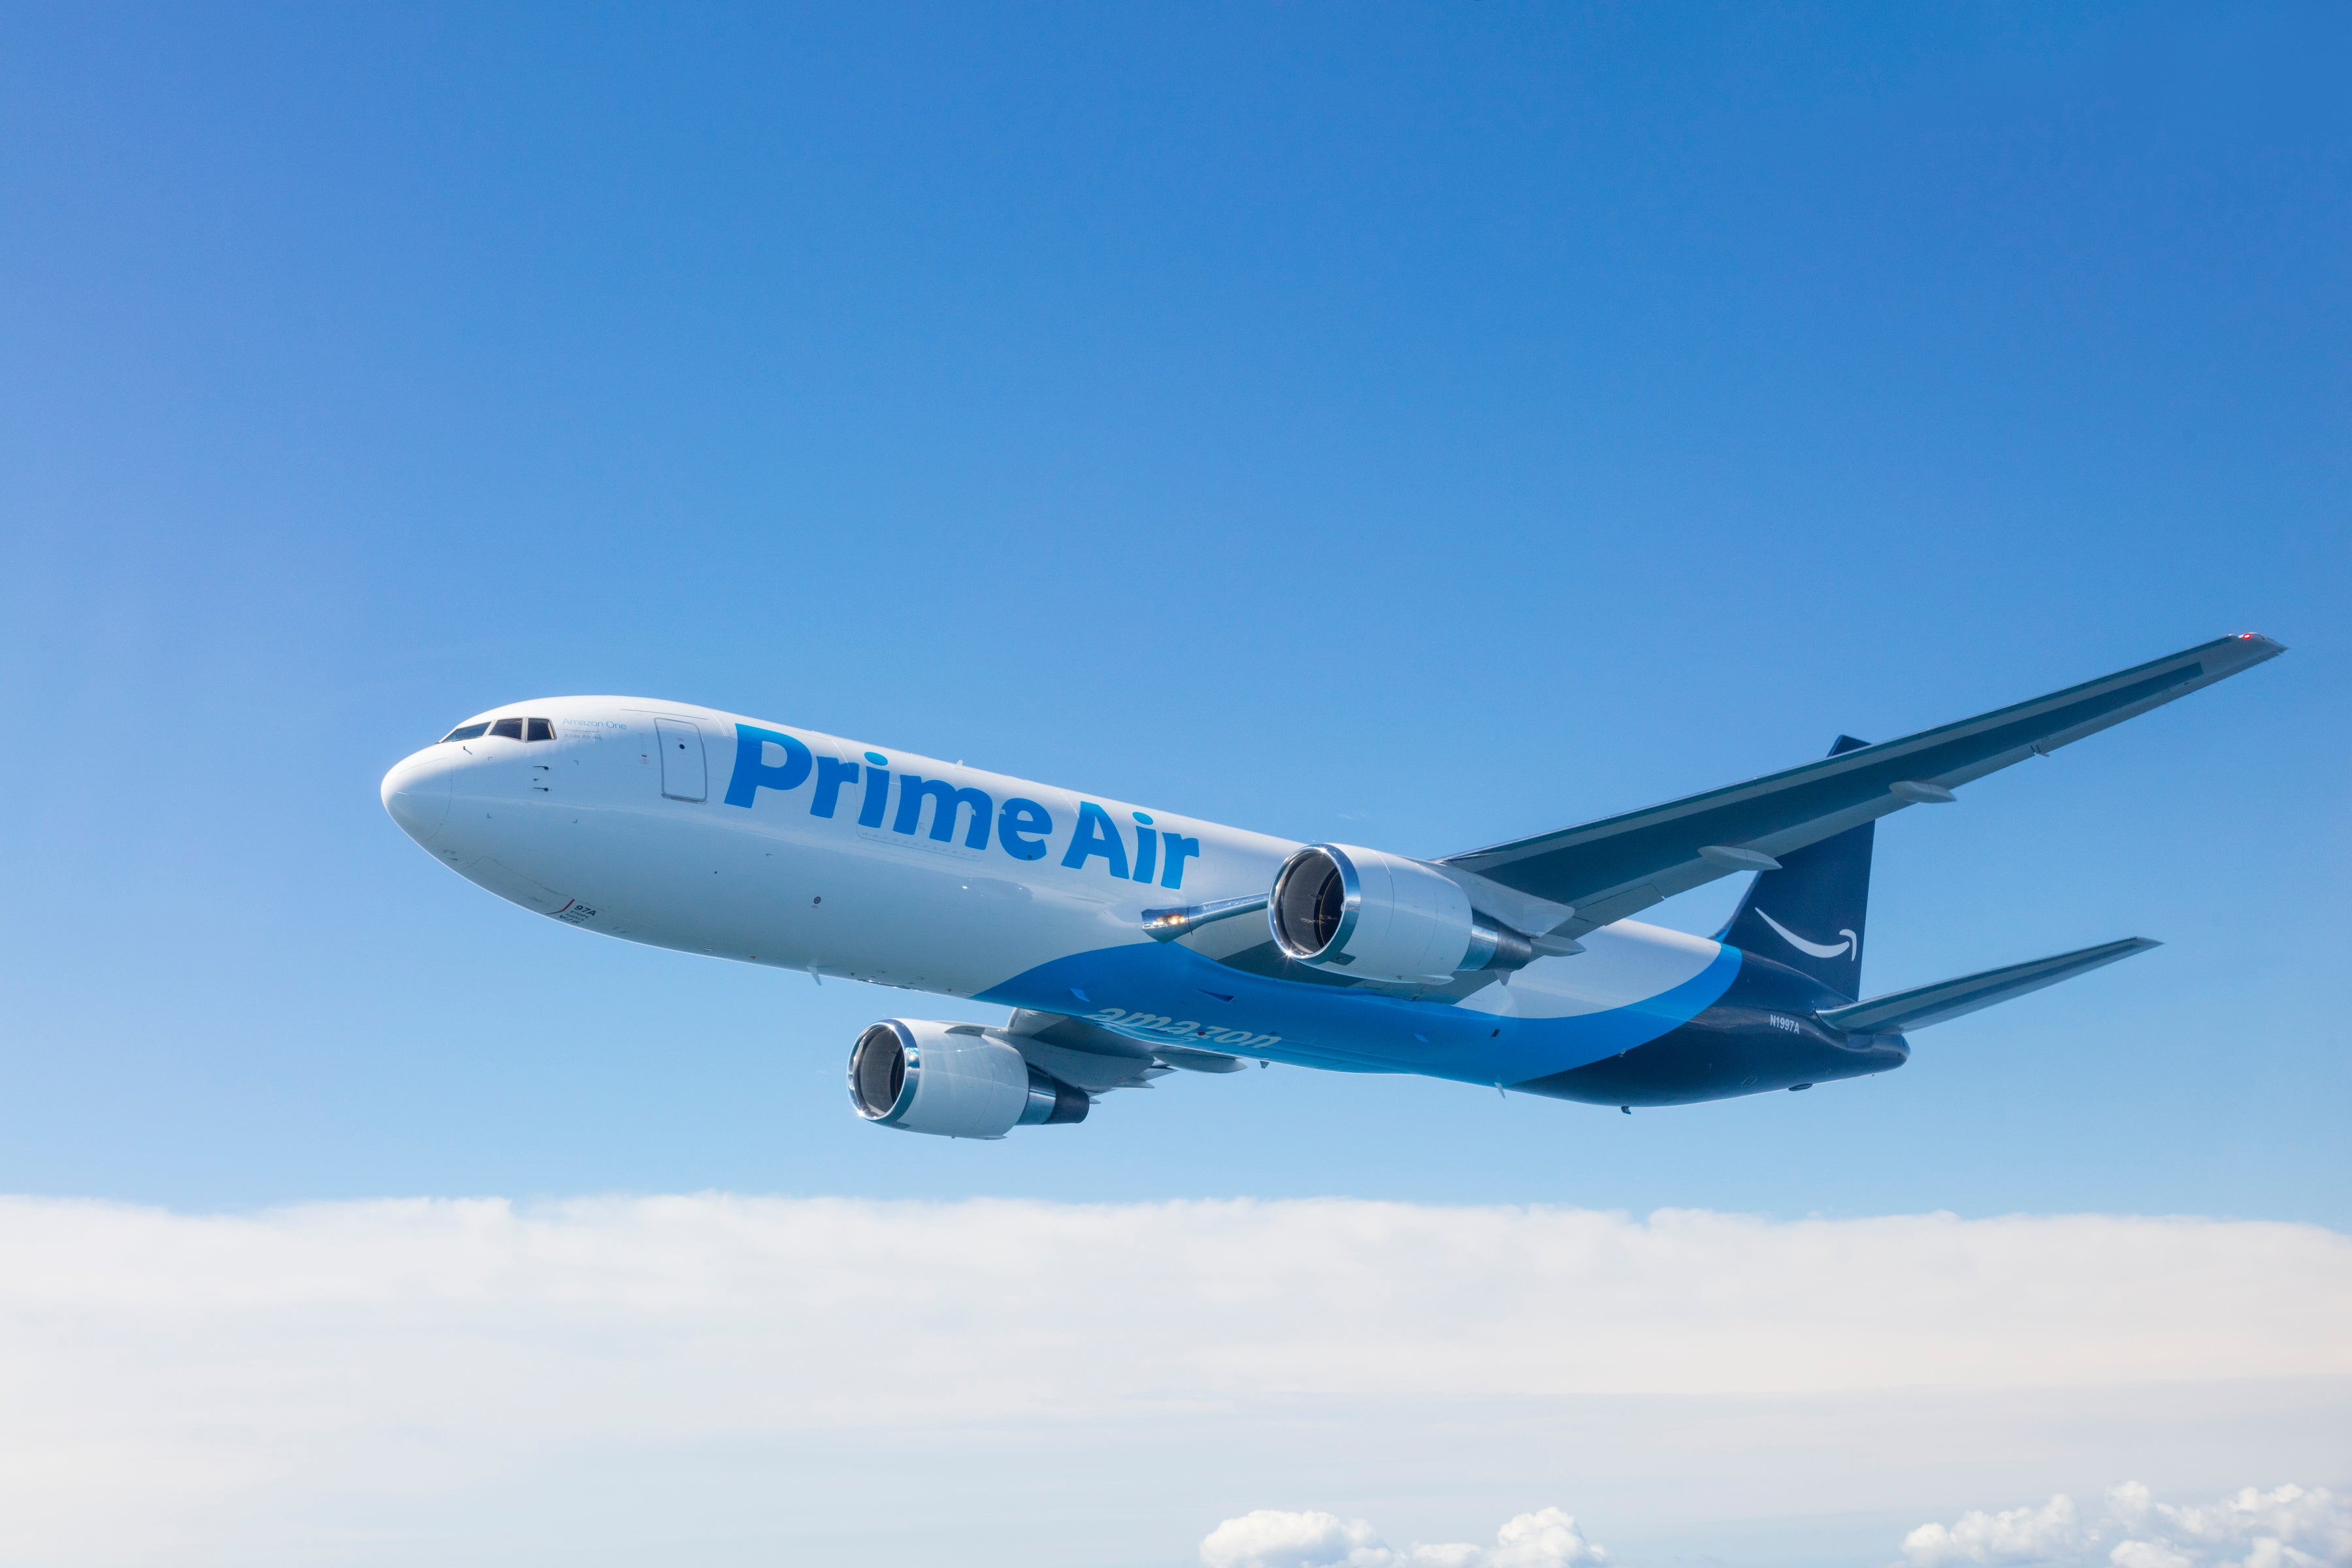 Amazon.com Poised to Fly 25% Higher, Says Analyst